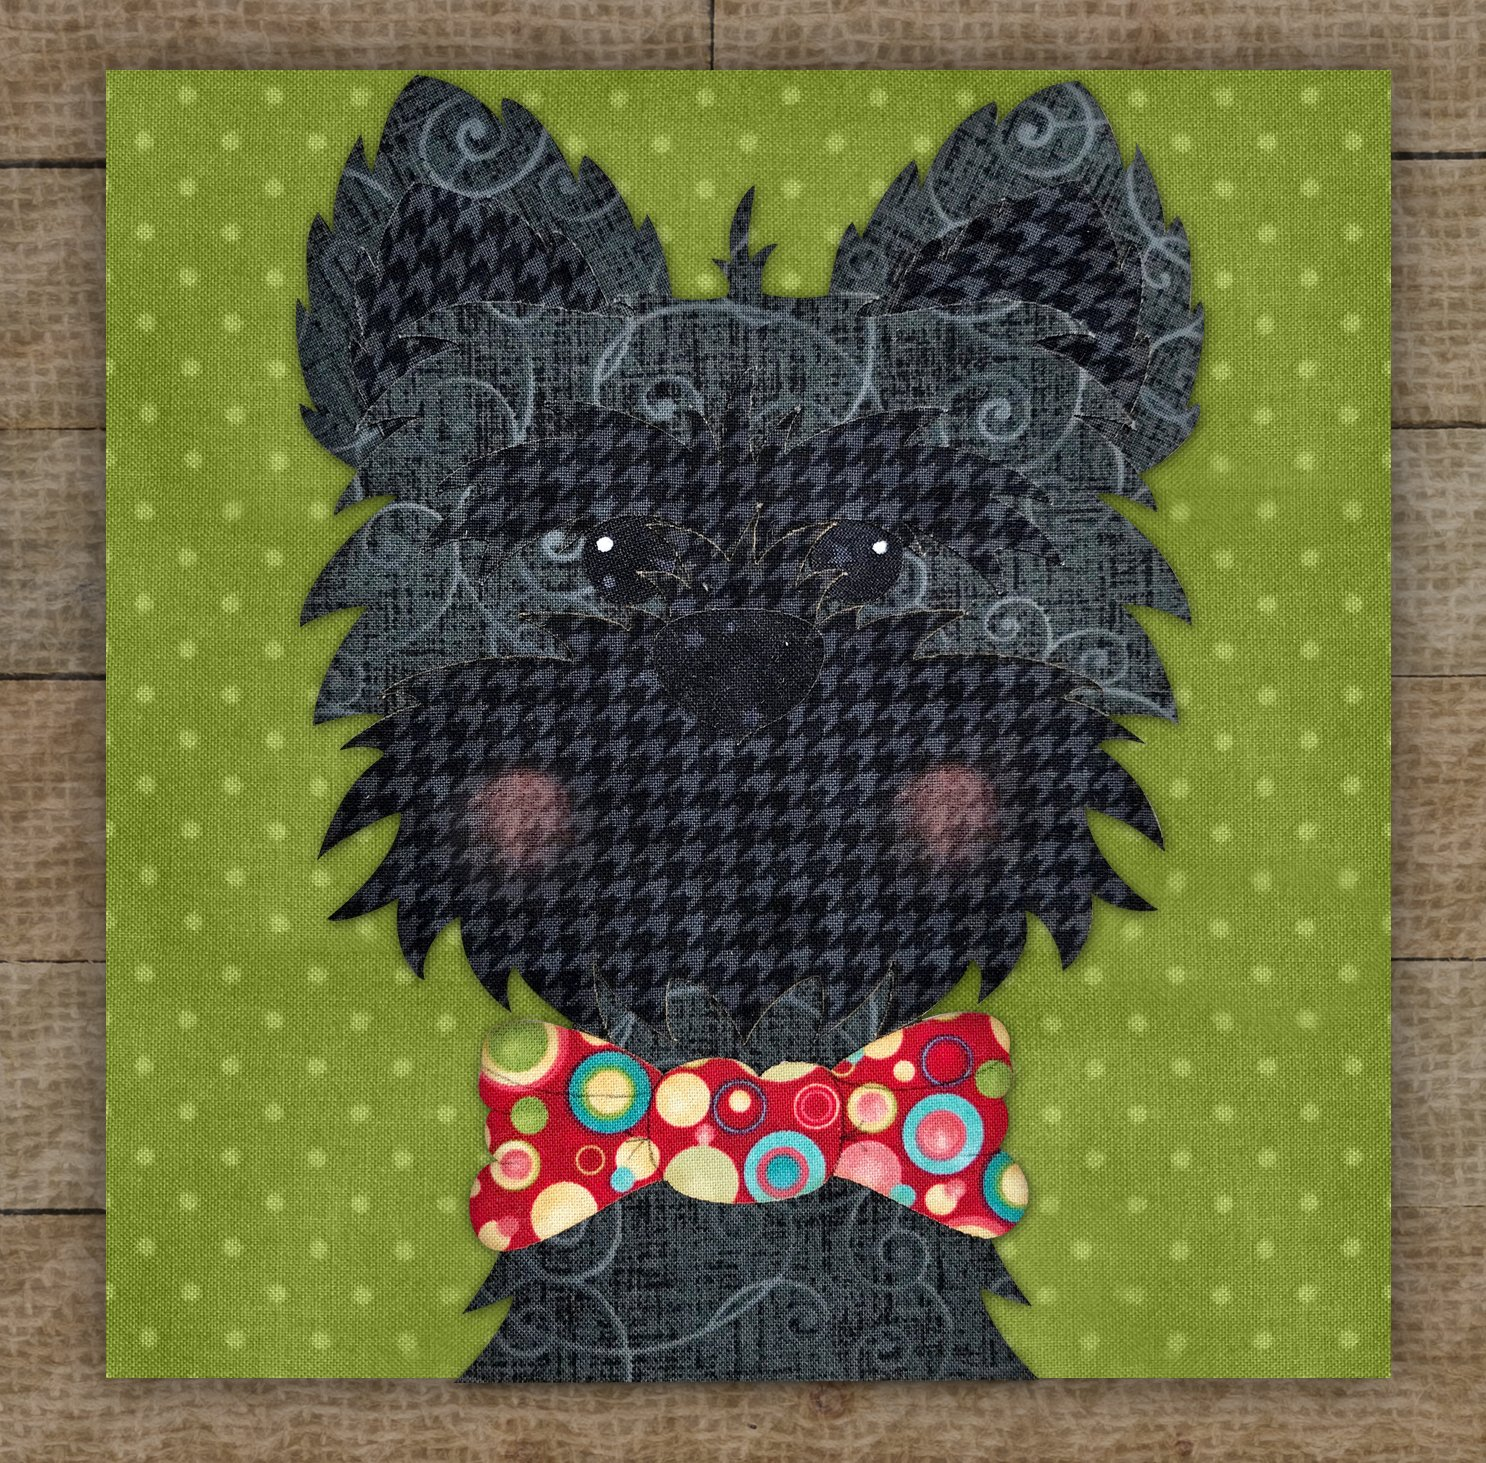 Cairn Terrier (Black) Precut Fused Applique Kit